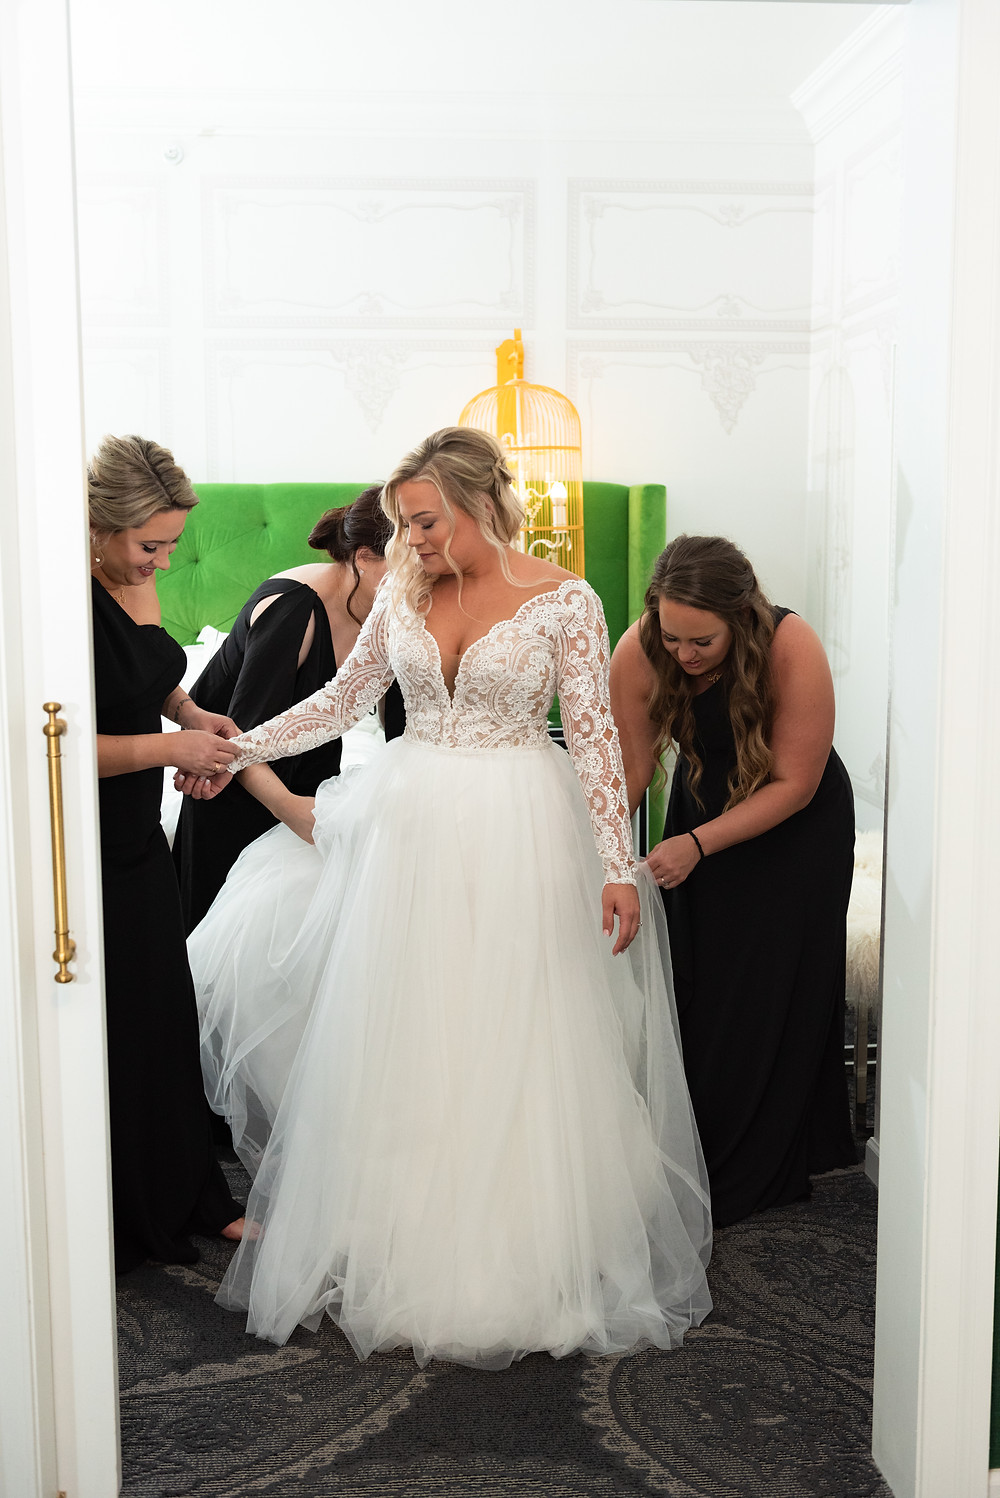 Bridesmaids in black dresses helping the bride into her Maggie Sottero gown